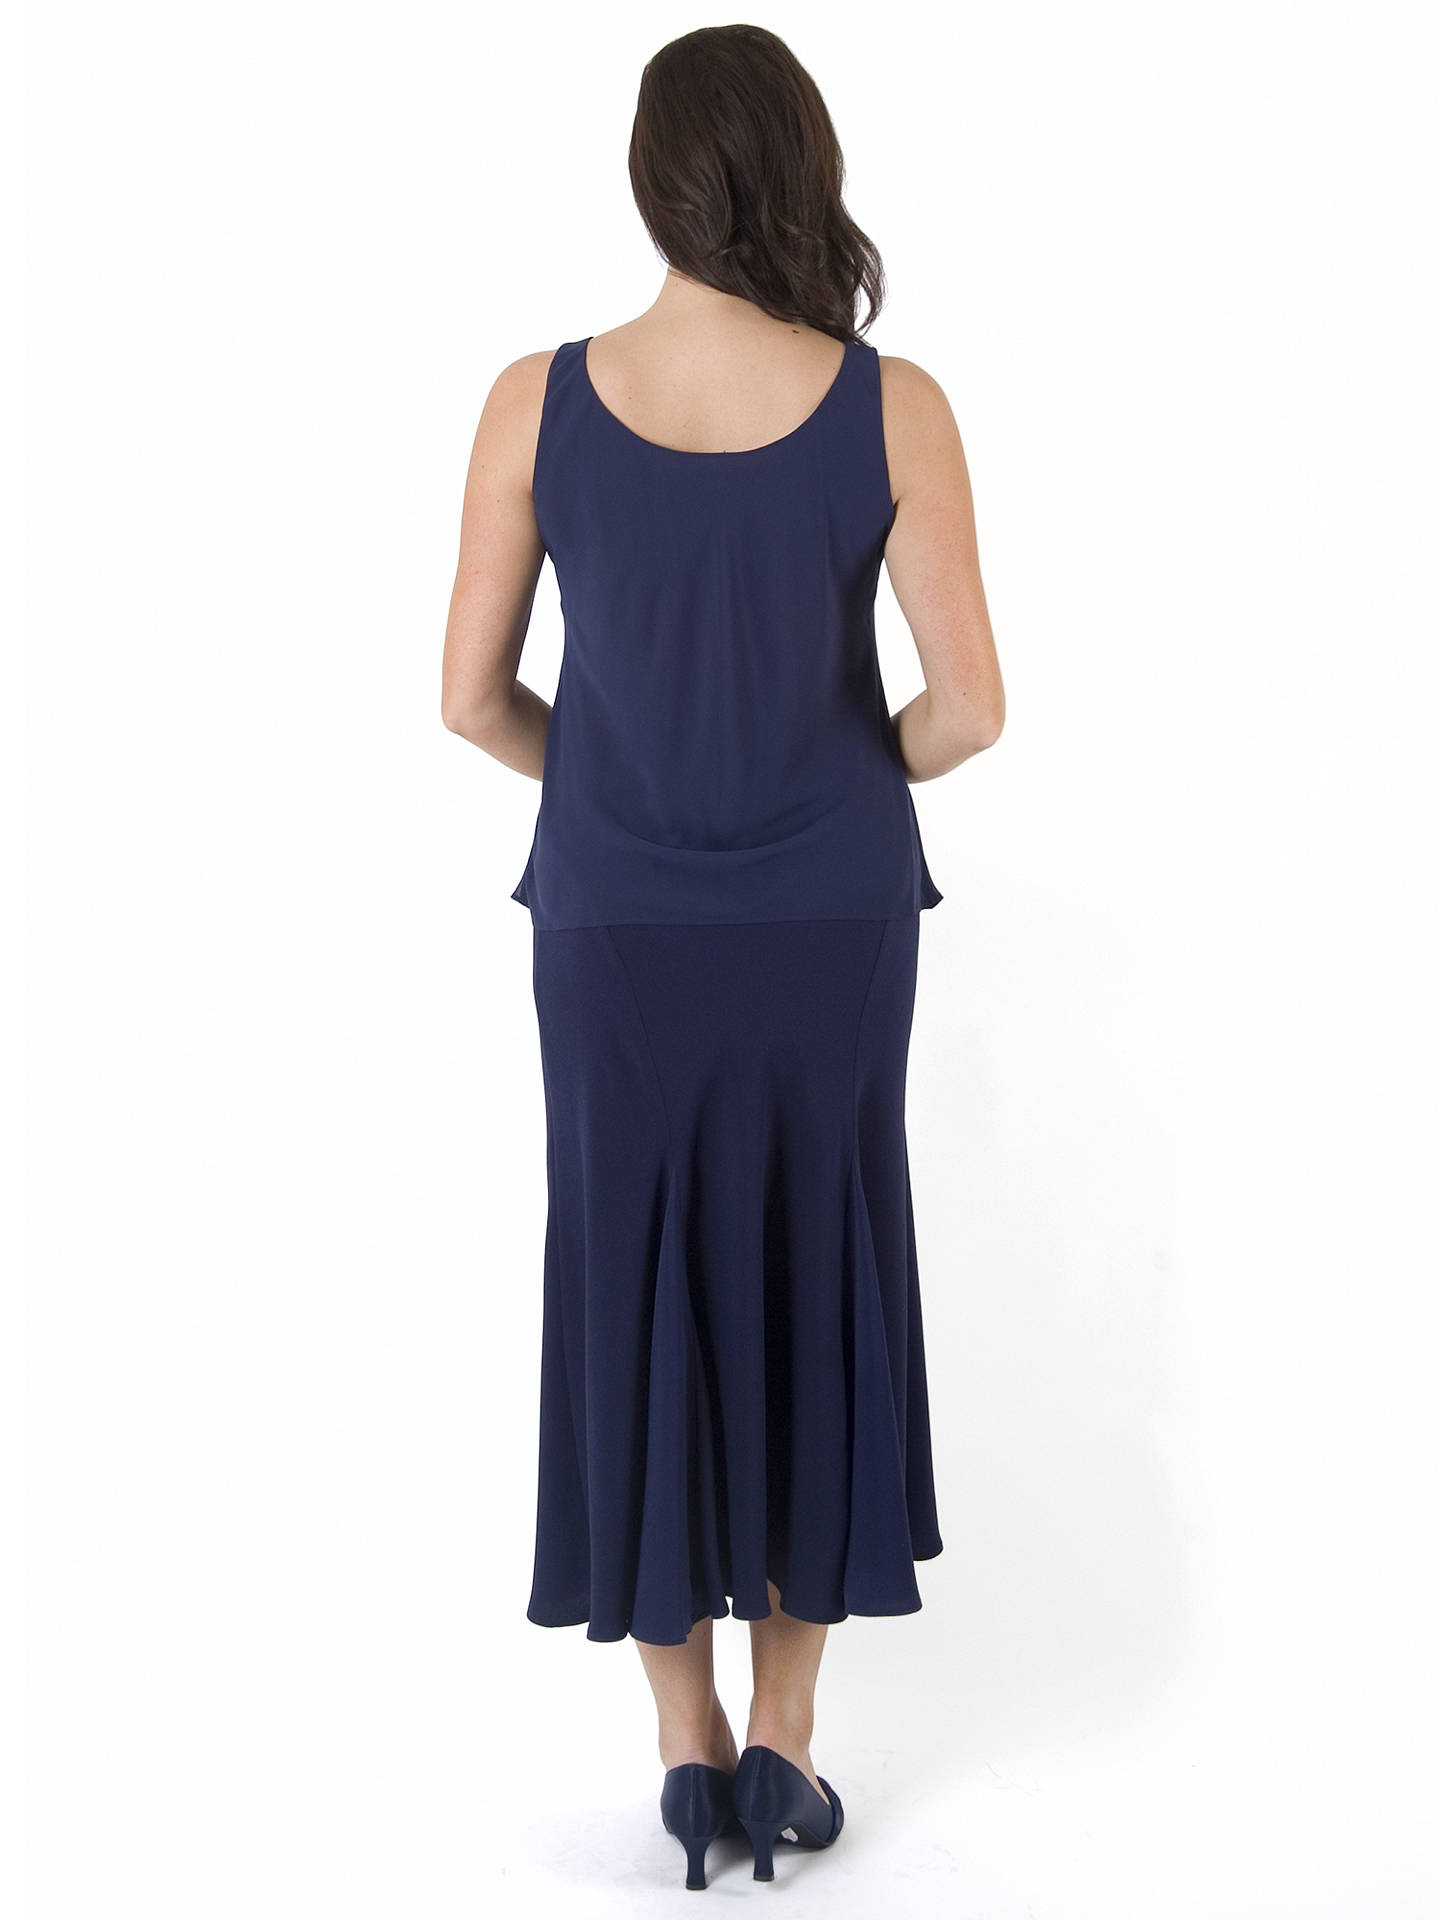 BuyChesca Chiffon Camisole, Blue, 14 Online at johnlewis.com